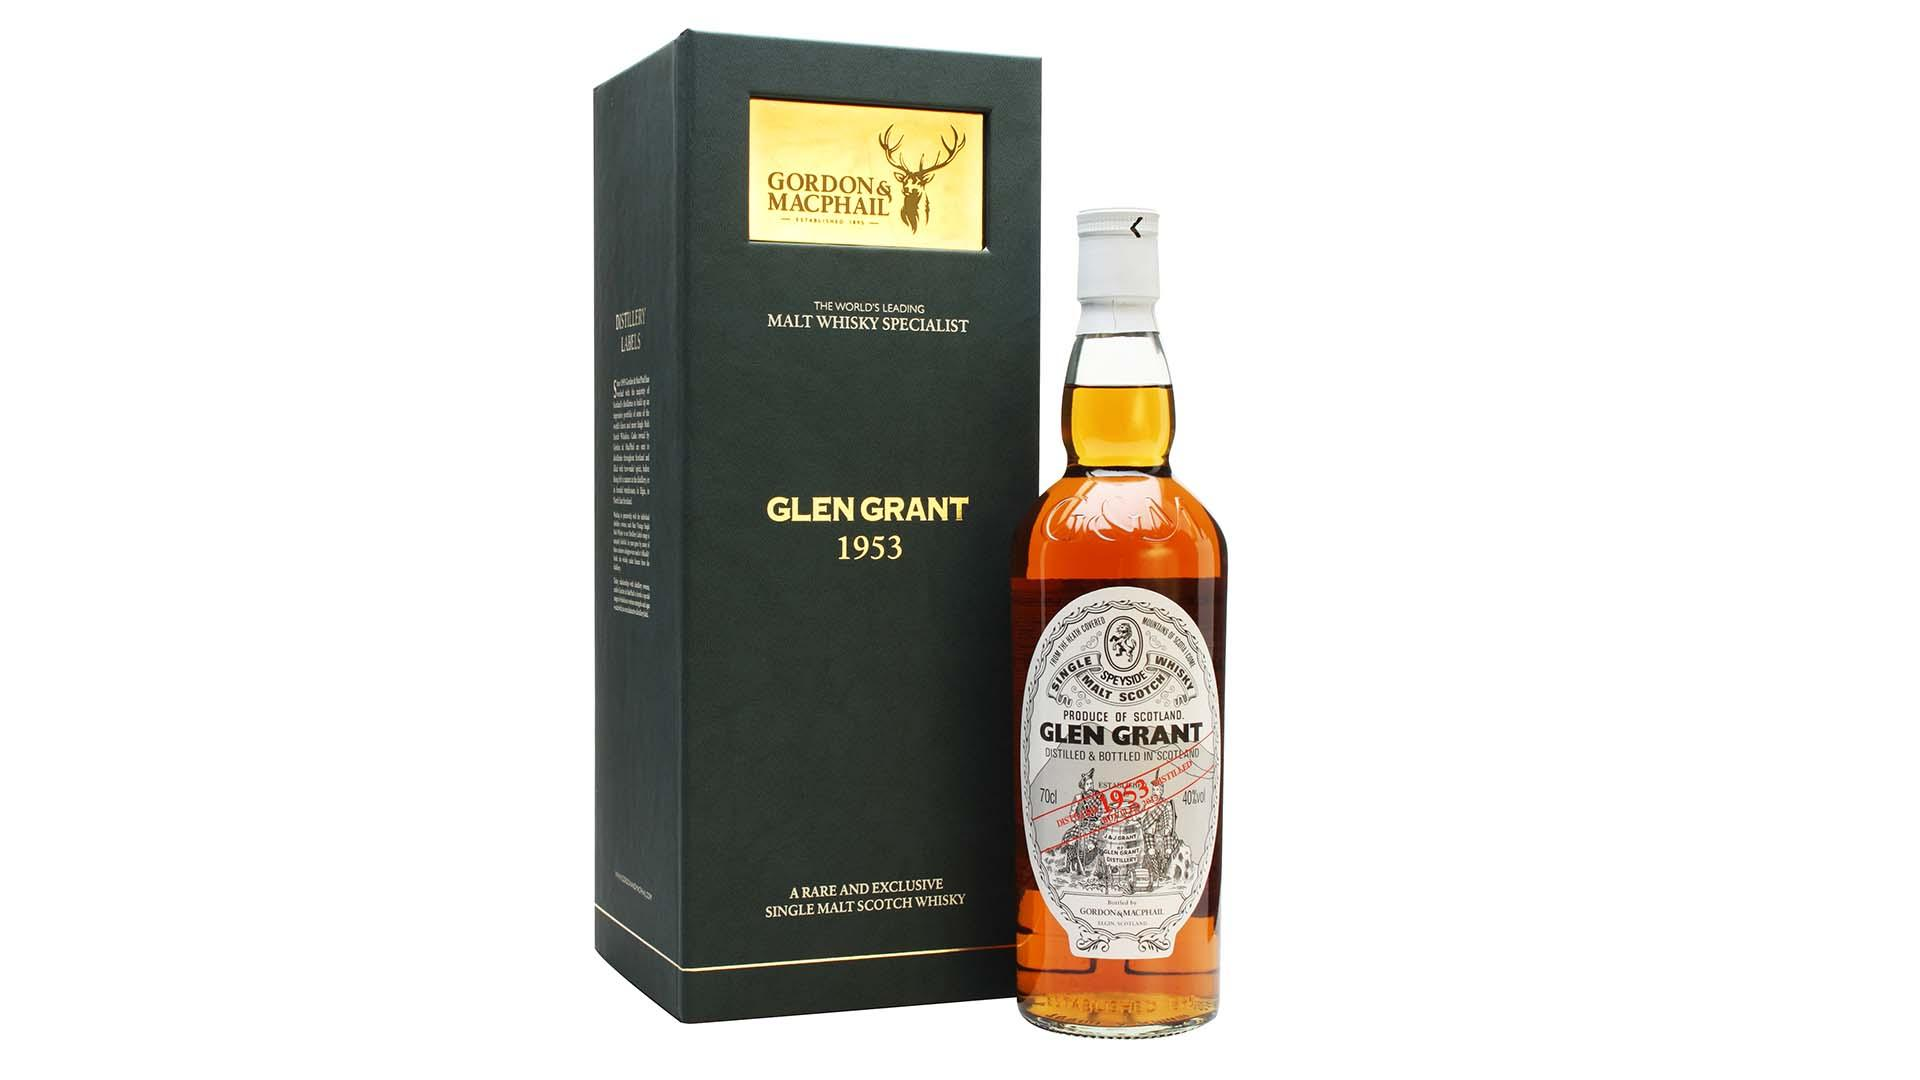 Glen Grant 1953 | 60 Year Old Gordon & Macphail